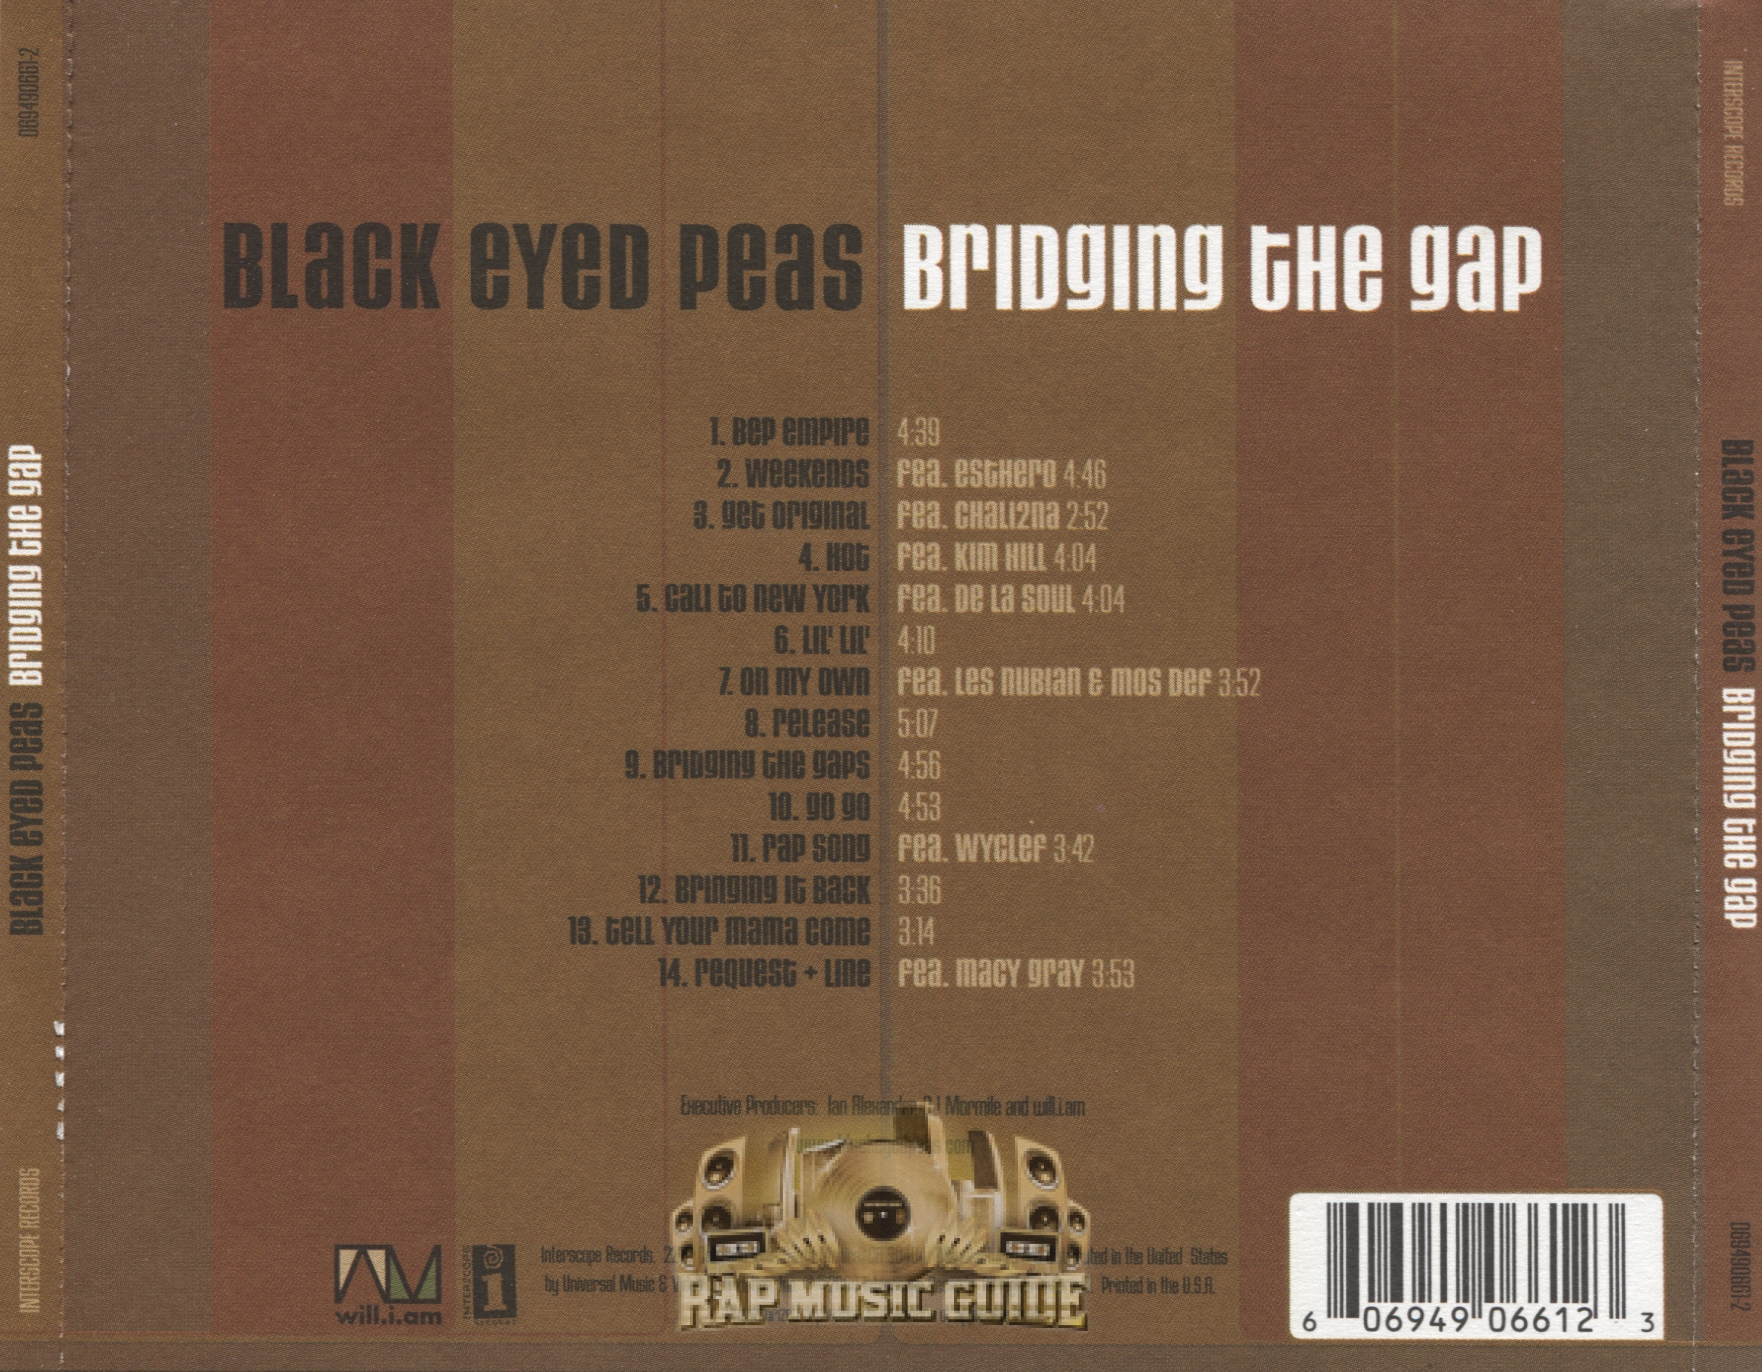 Black Eyed Peas - Bridging The Gap: CD | Rap Music Guide